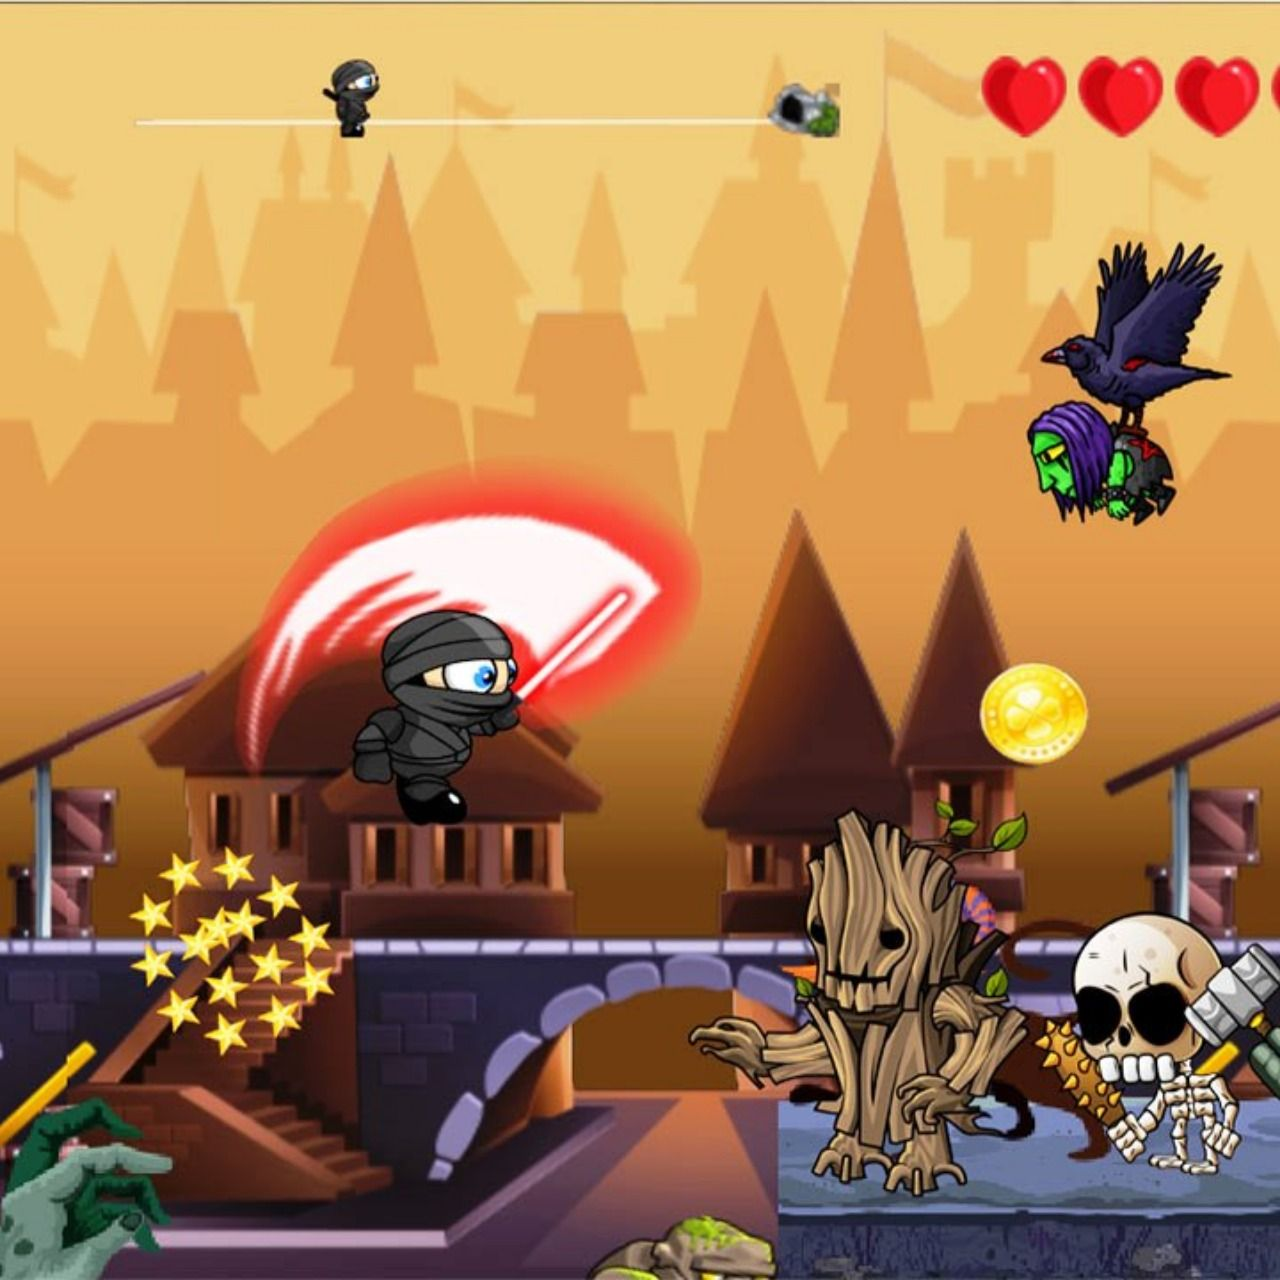 We have released a new action adventure 2D android game in